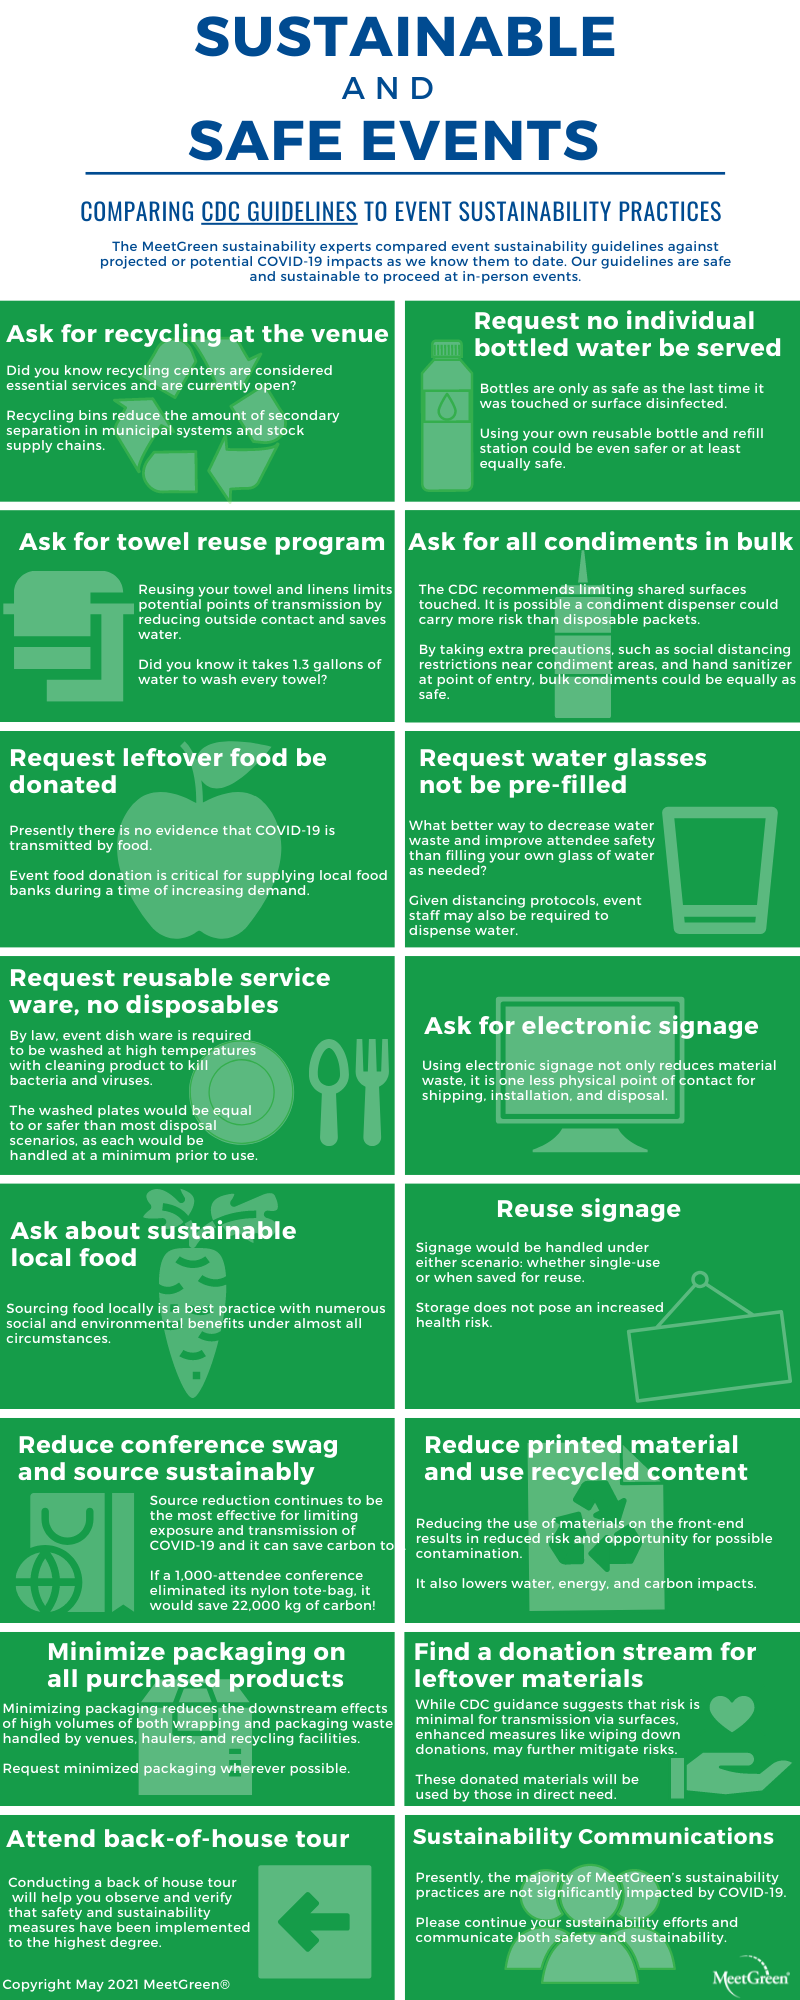 2021 MeetGreen Sustainable & Safe Infographic